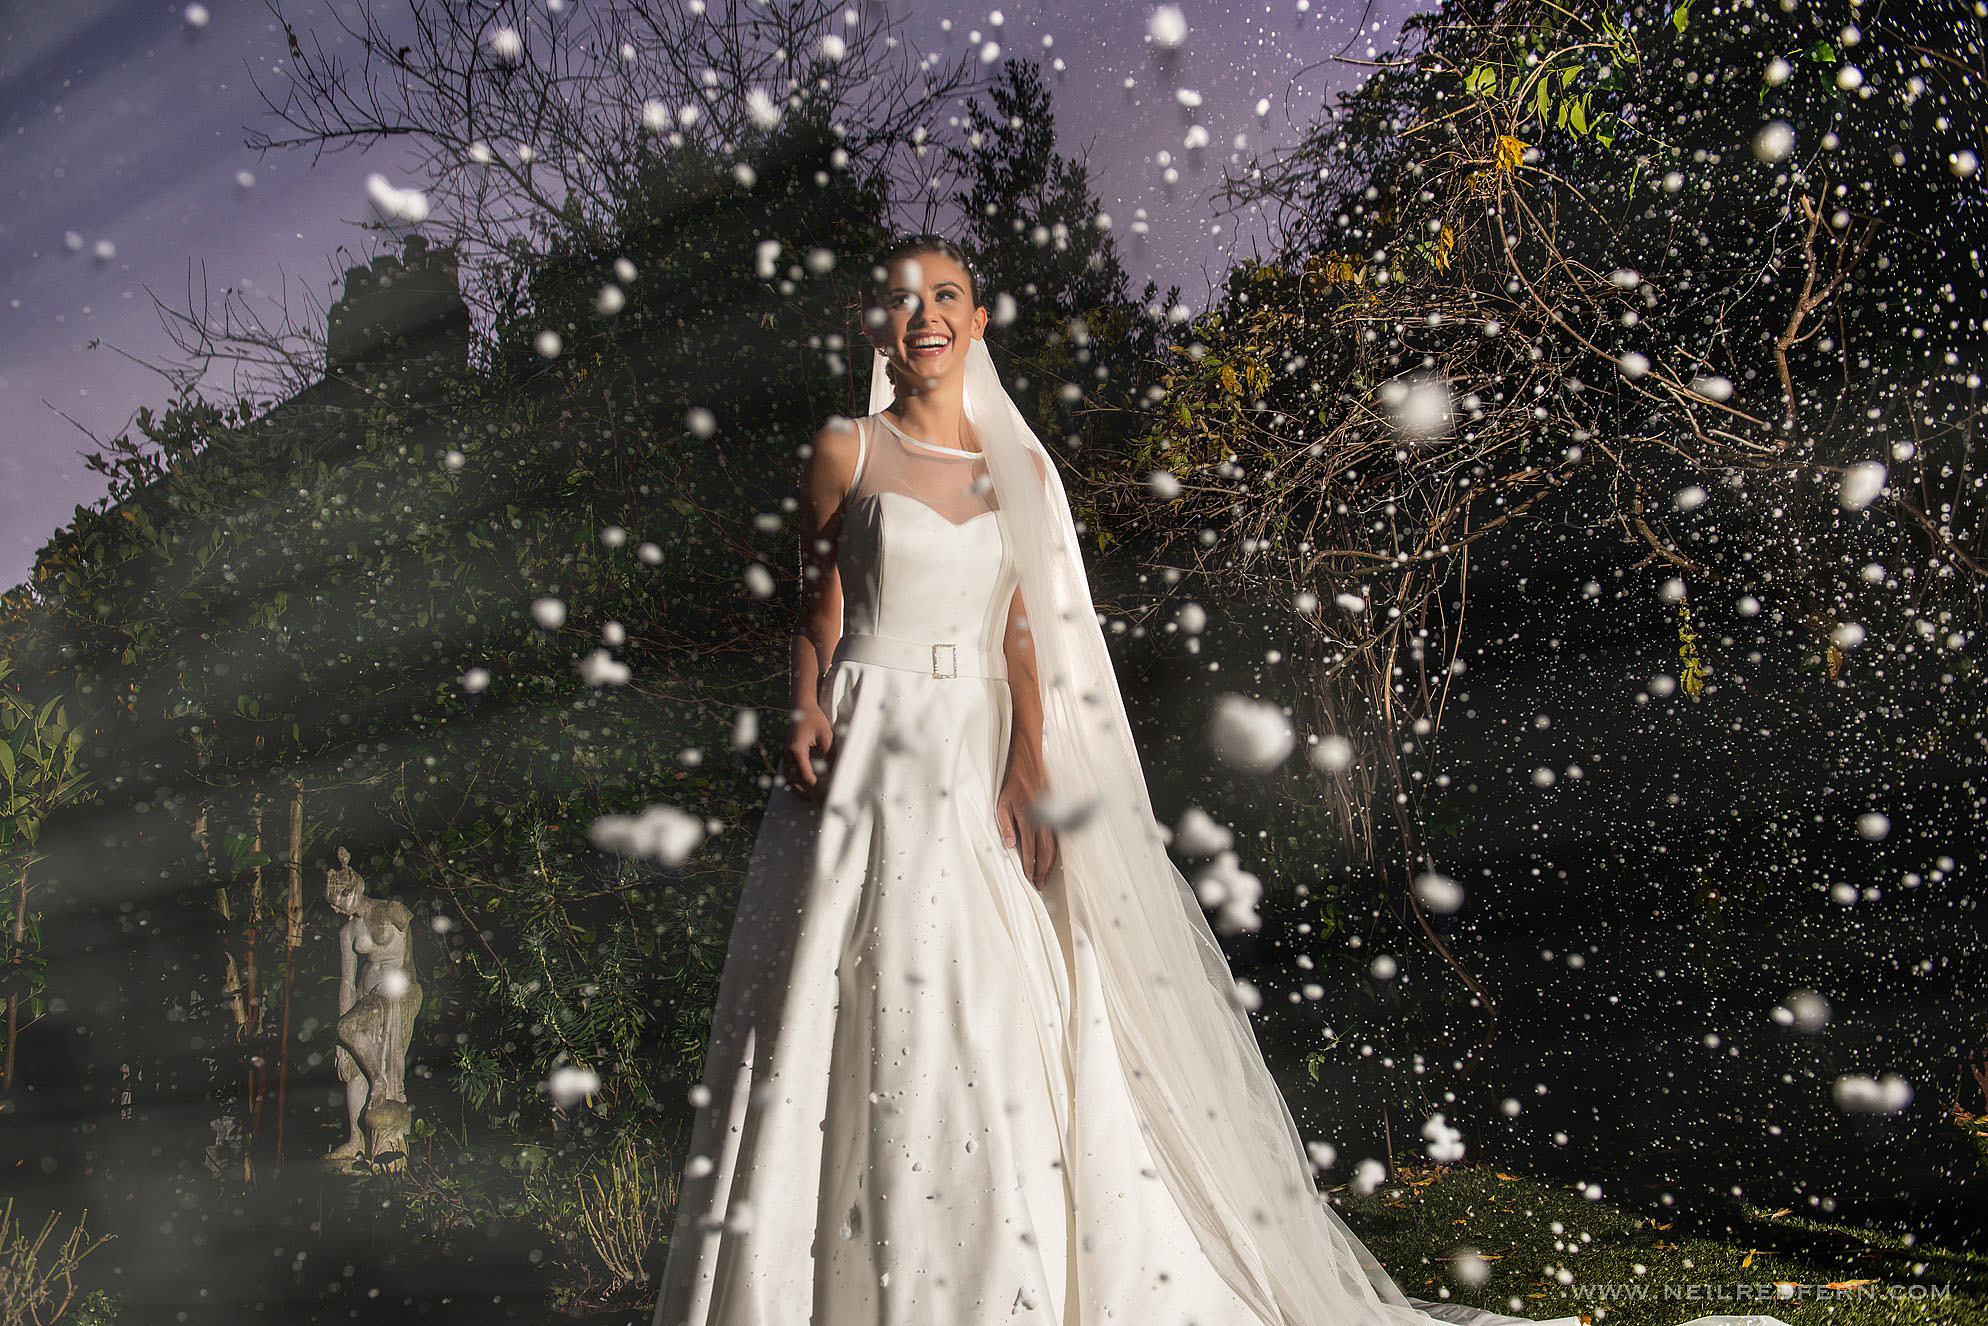 photograph of a bride in the snow